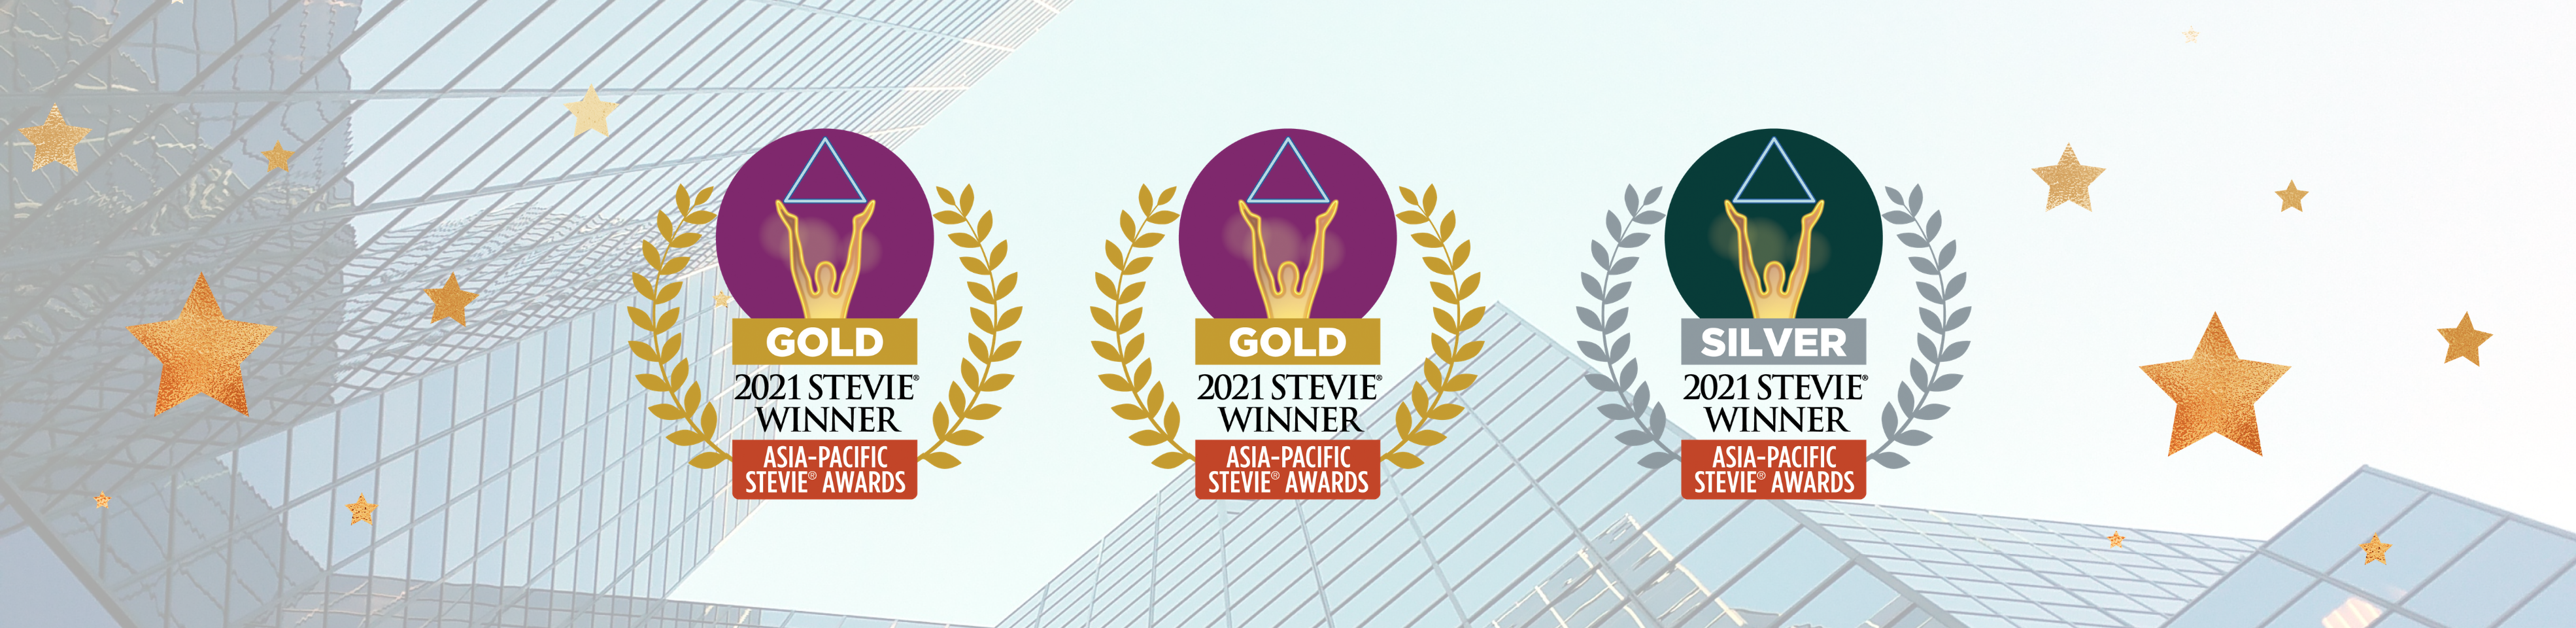 CCH iKnow and CCH IQ Client Match Stevie Award 2021